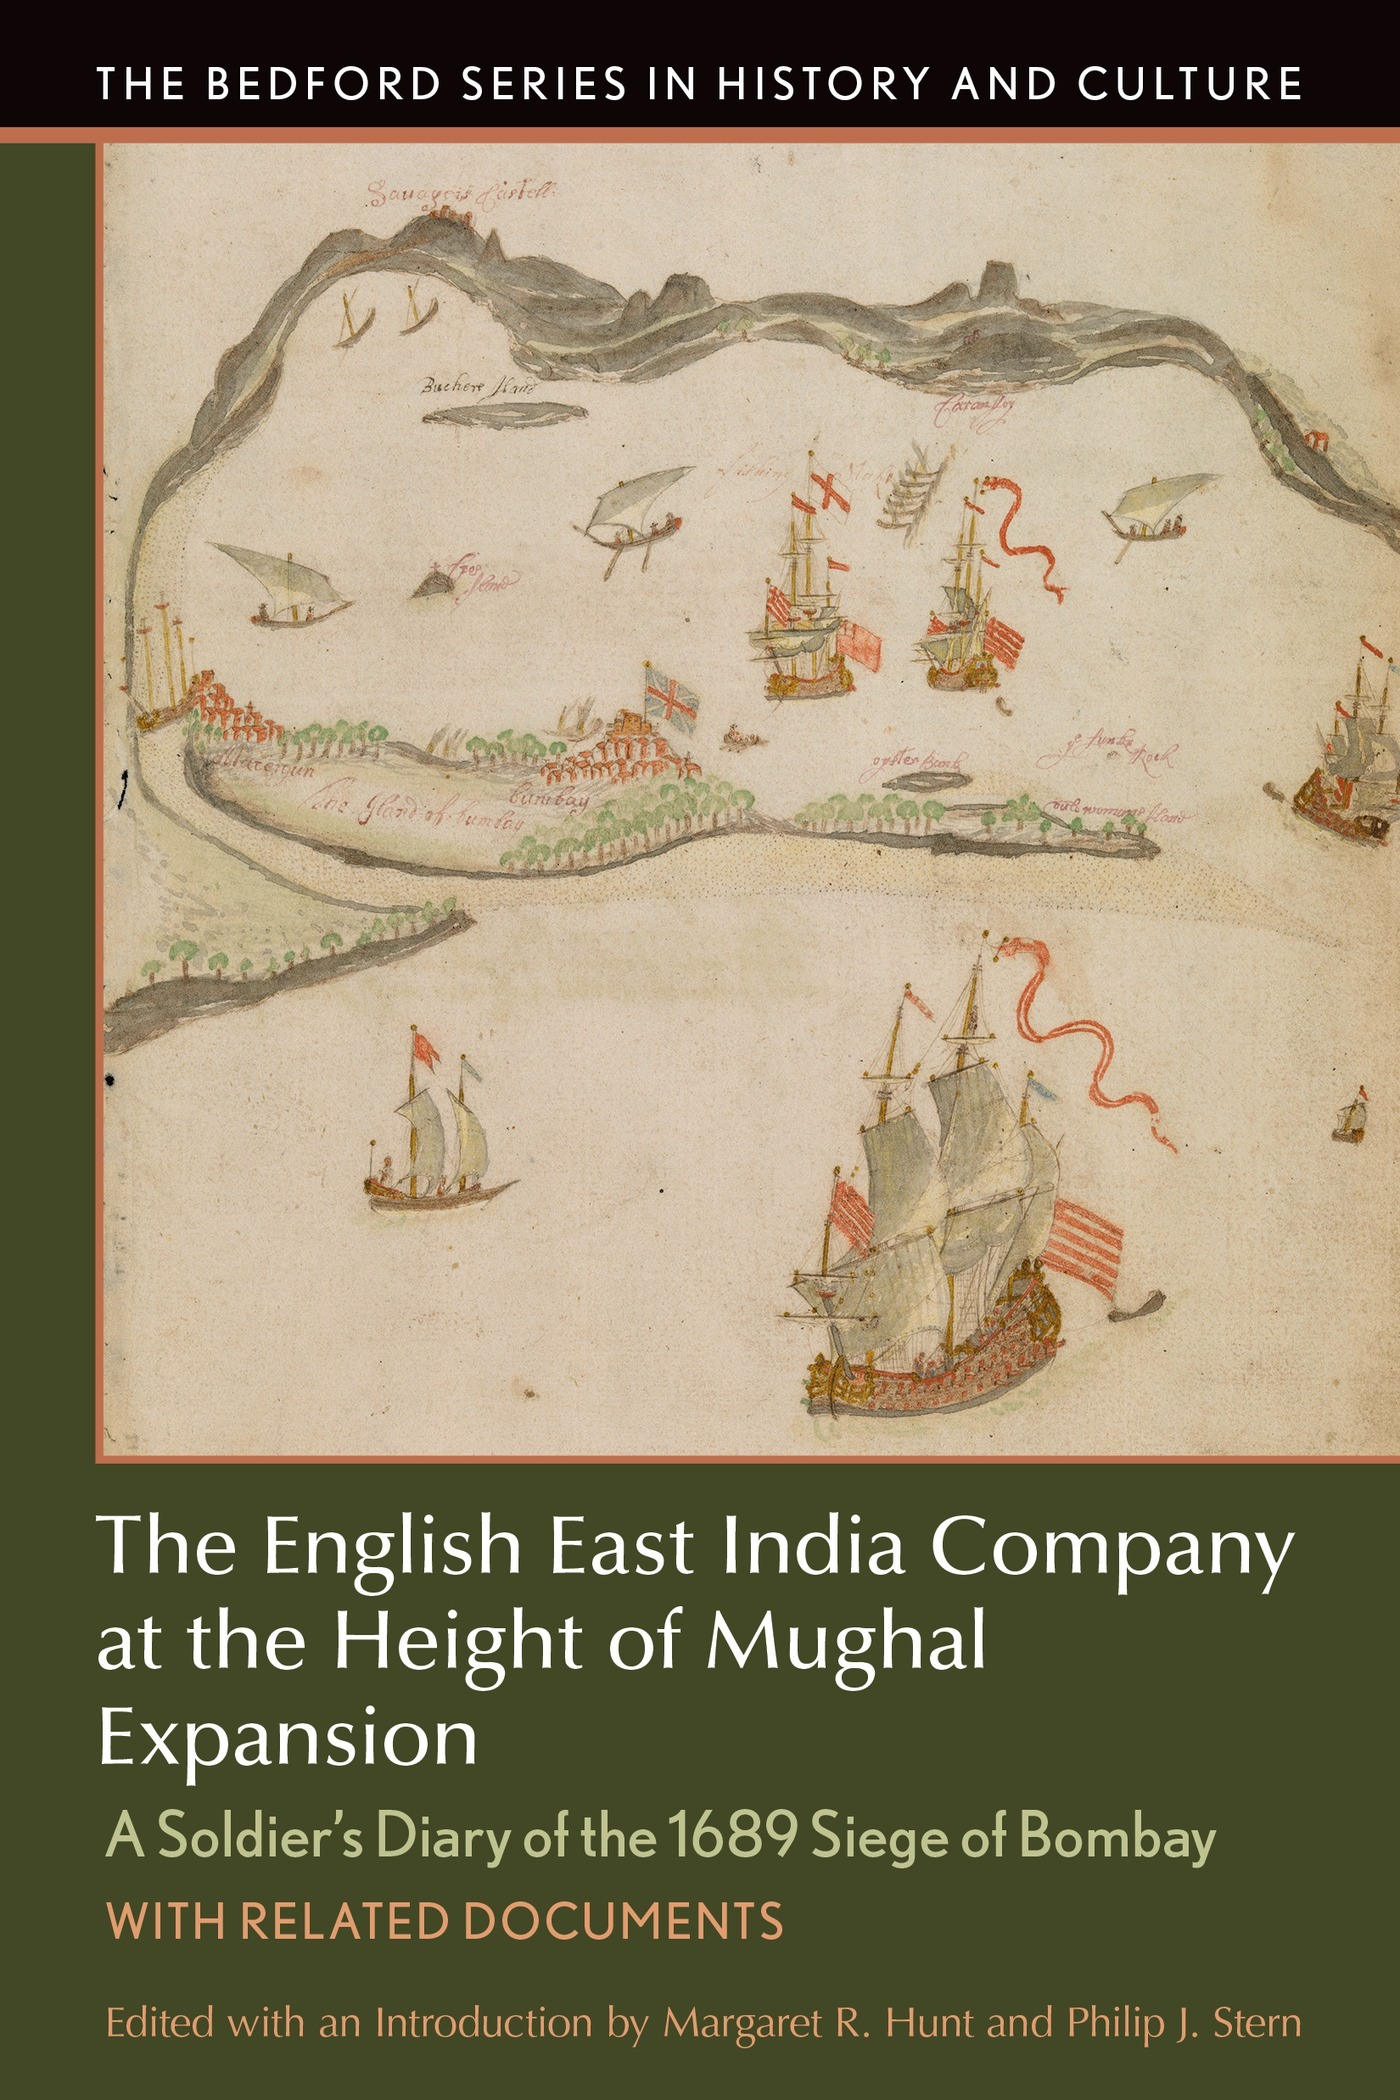 The English East India Company at the Height of Mughal Expansion: A Soldiers Diary of the 1689 Siege of Bombay, with Related Documents Margaret Hunt